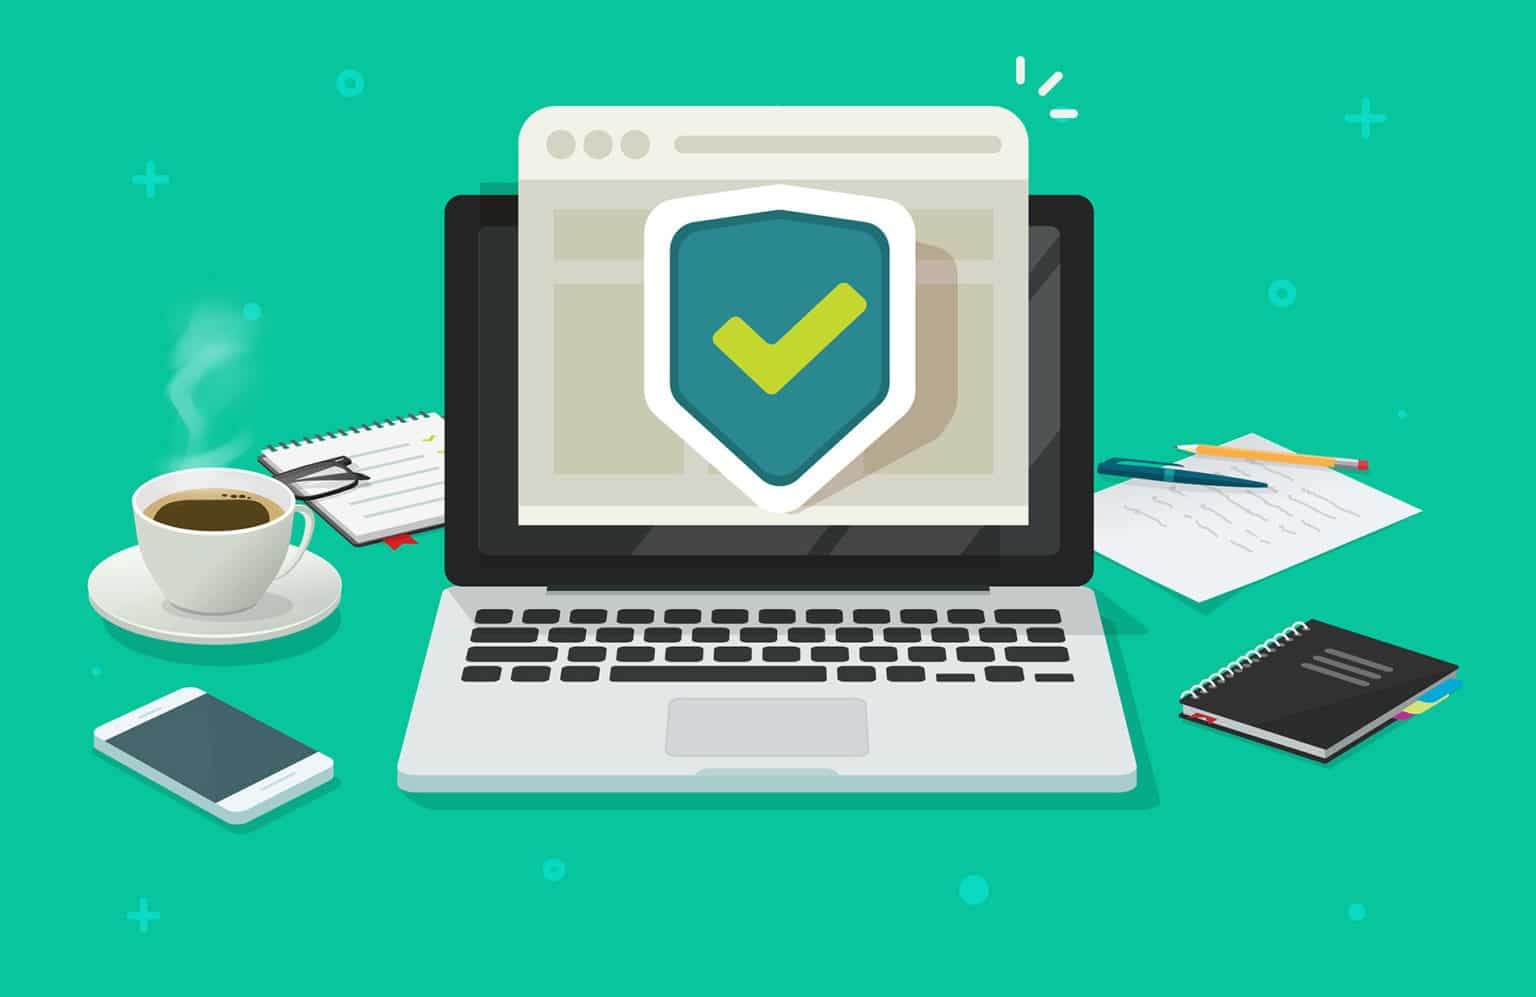 Website online protection shield